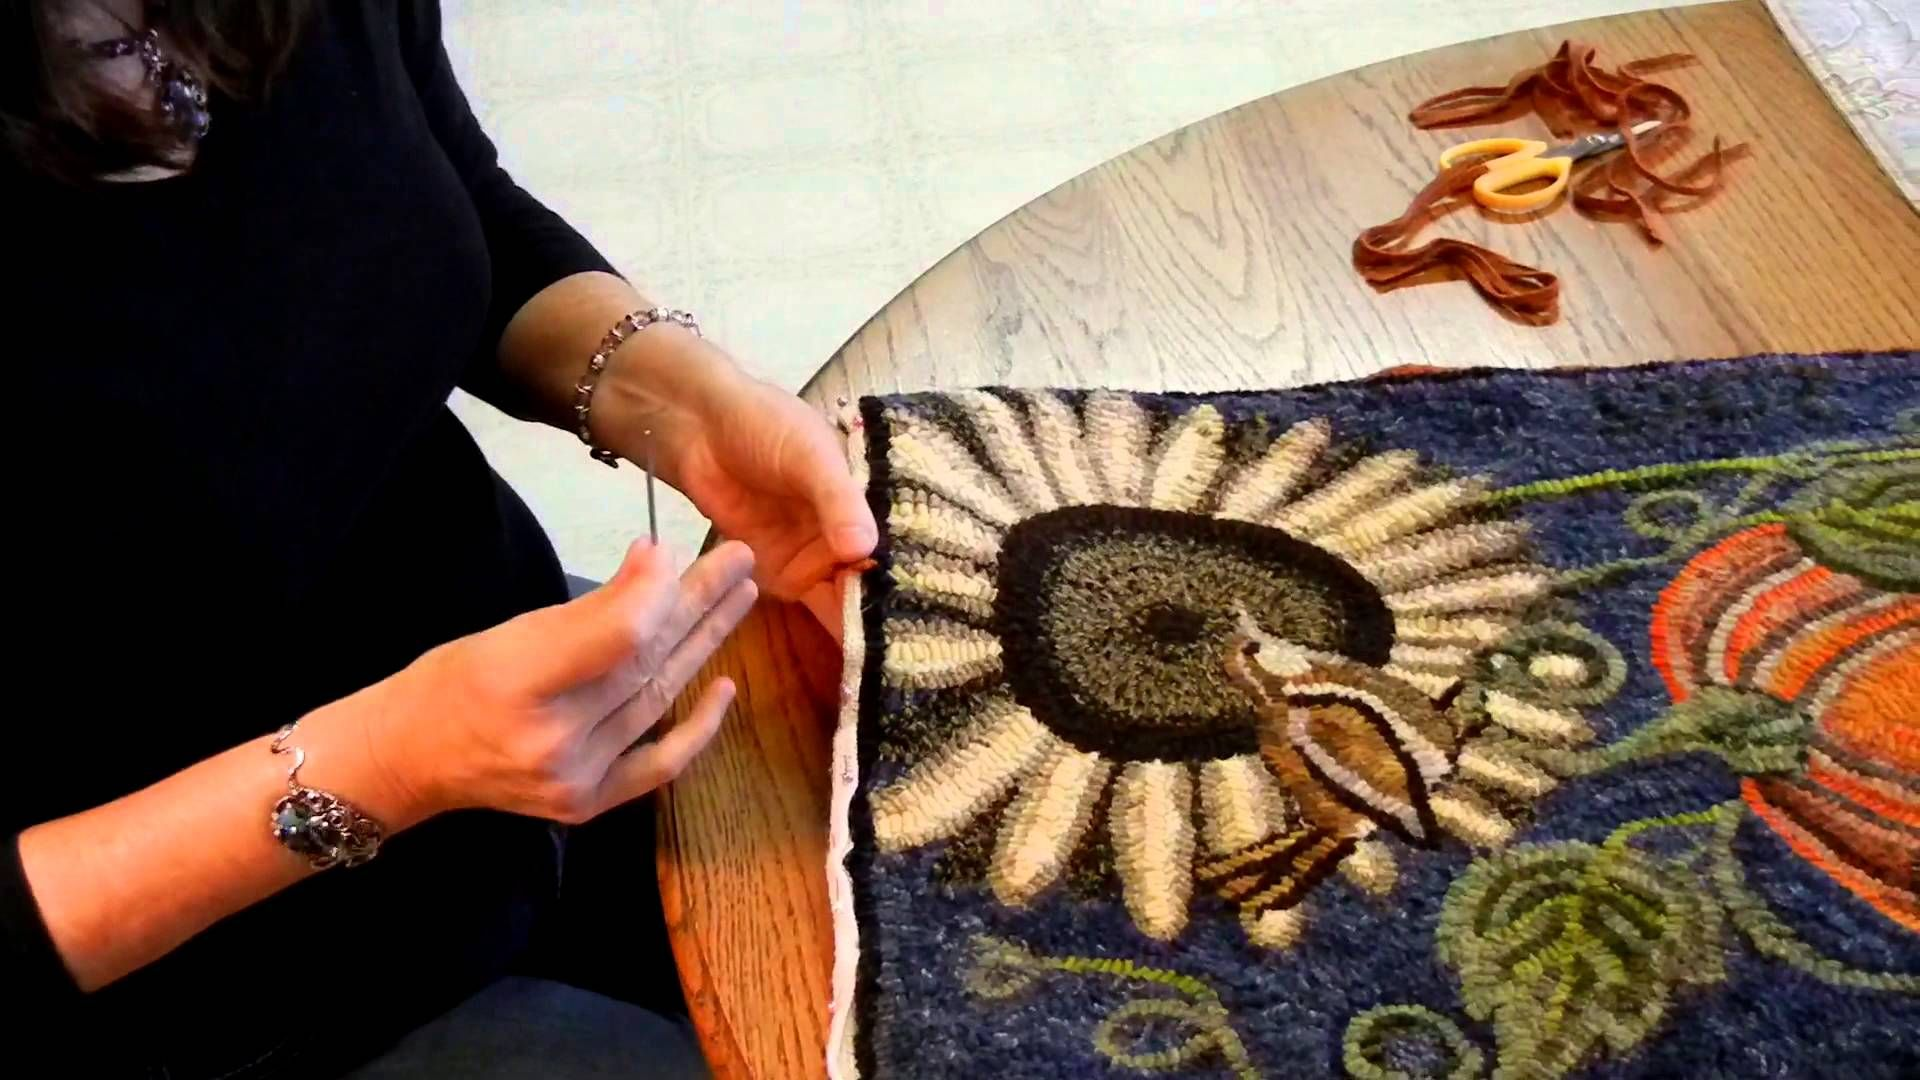 Finish A Hand Hooked Rug By Binding